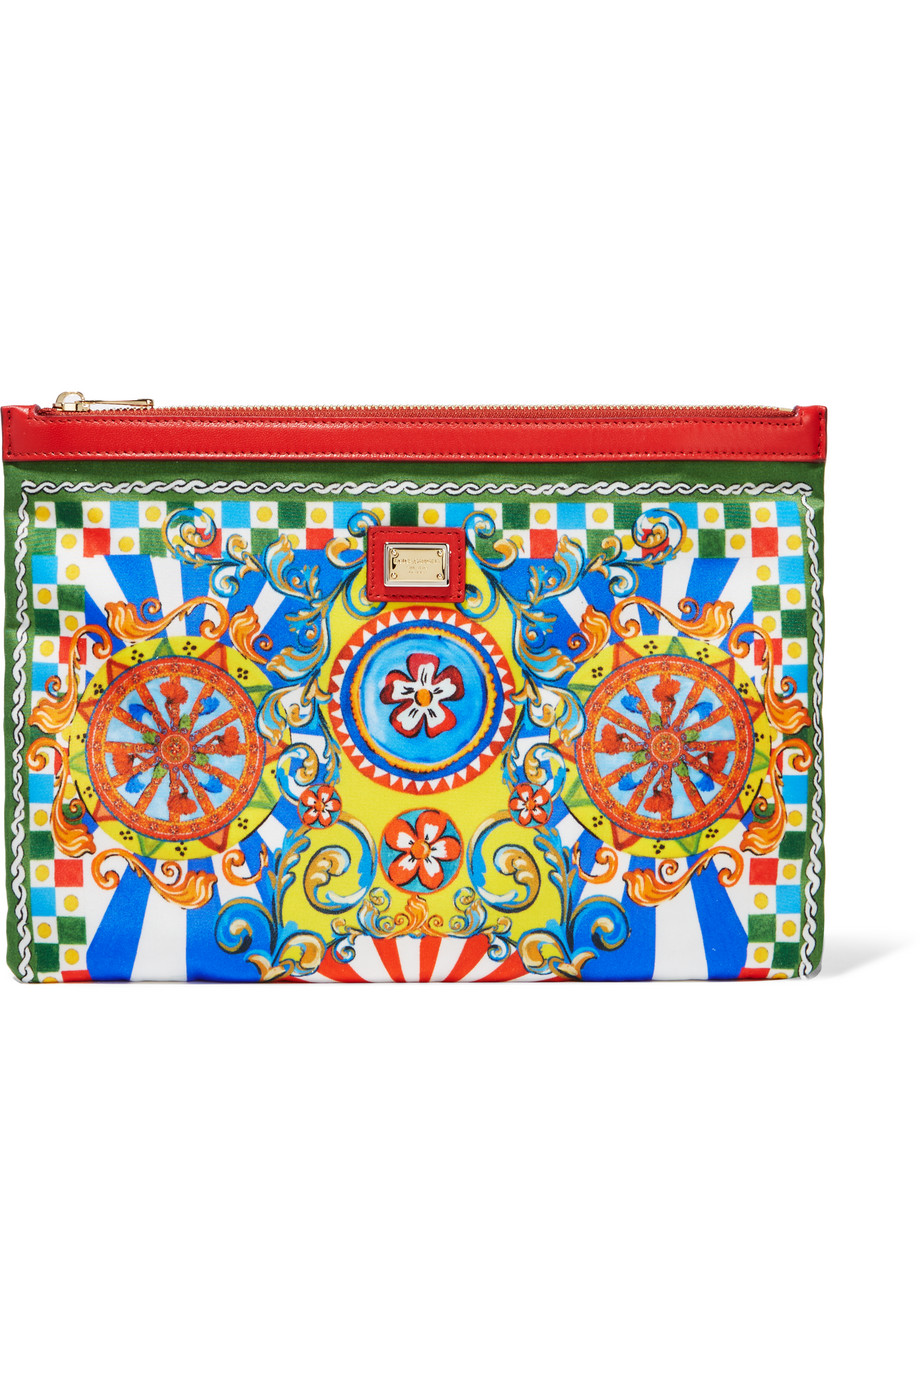 Dolce & Gabbana Carretto Leather-Trimmed Printed Twill Pouch